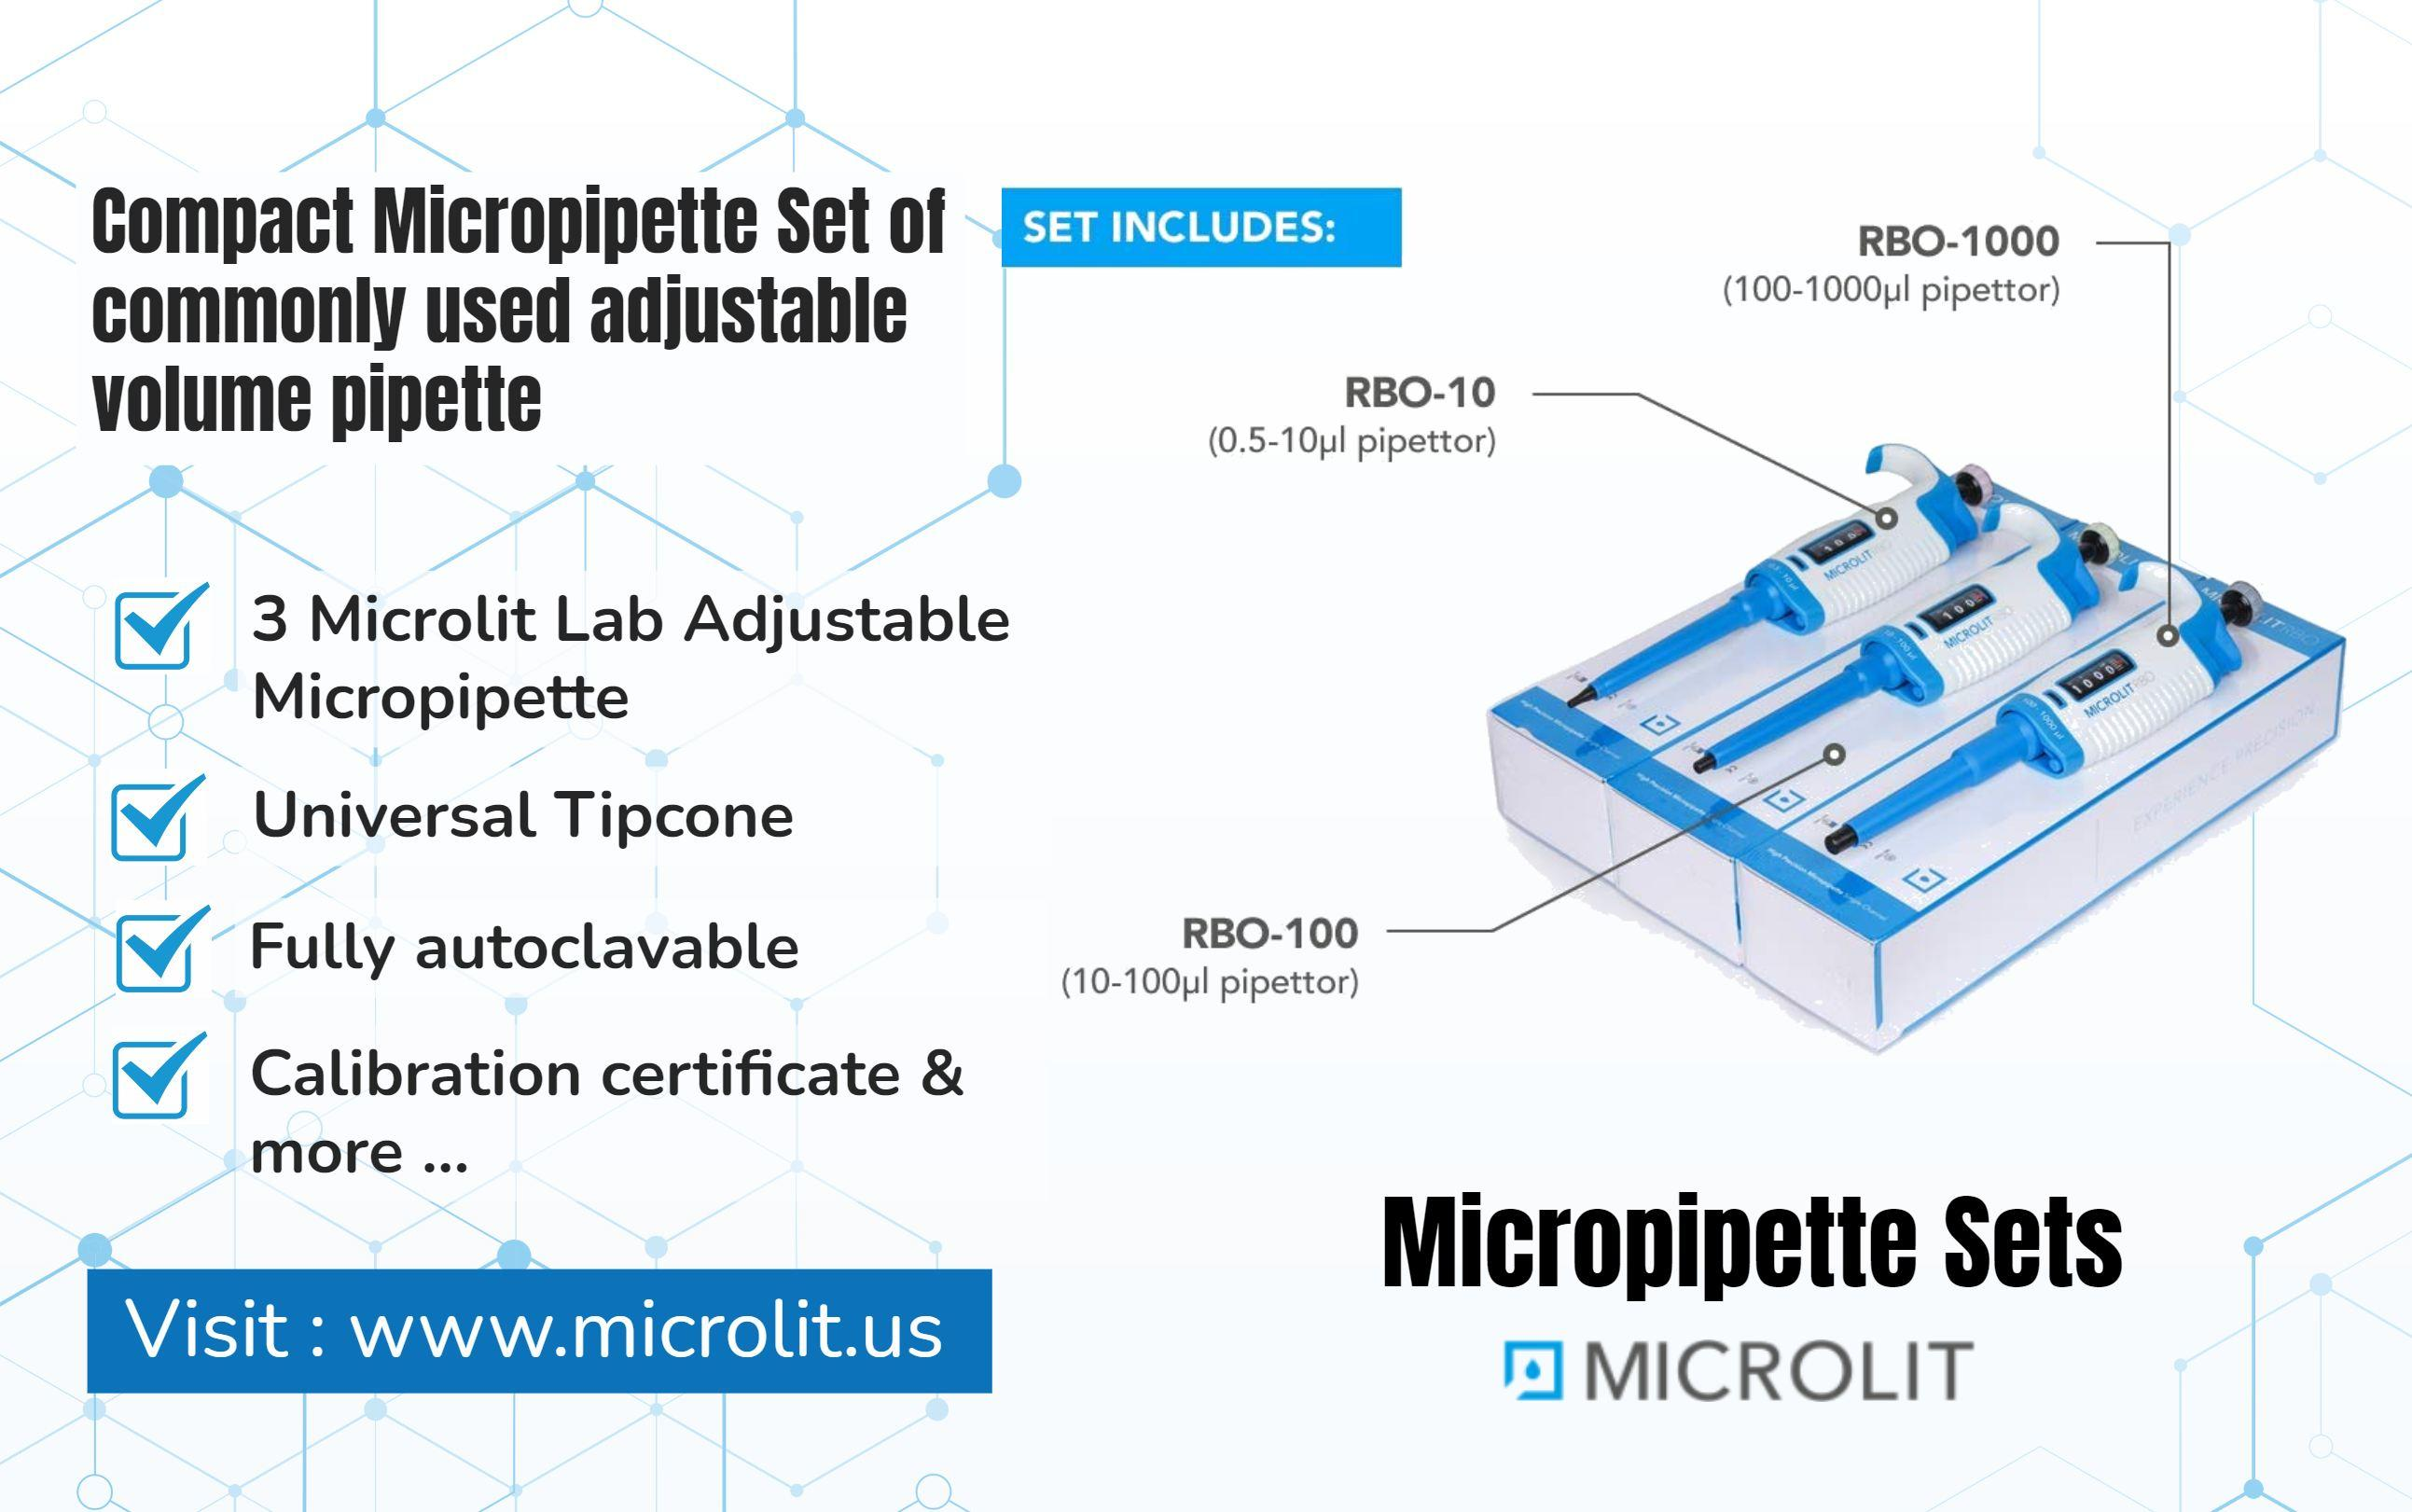 Image - Microlit offers you a set of compact #micropipette that is used as a adjustable volume #pipette. The set incl...